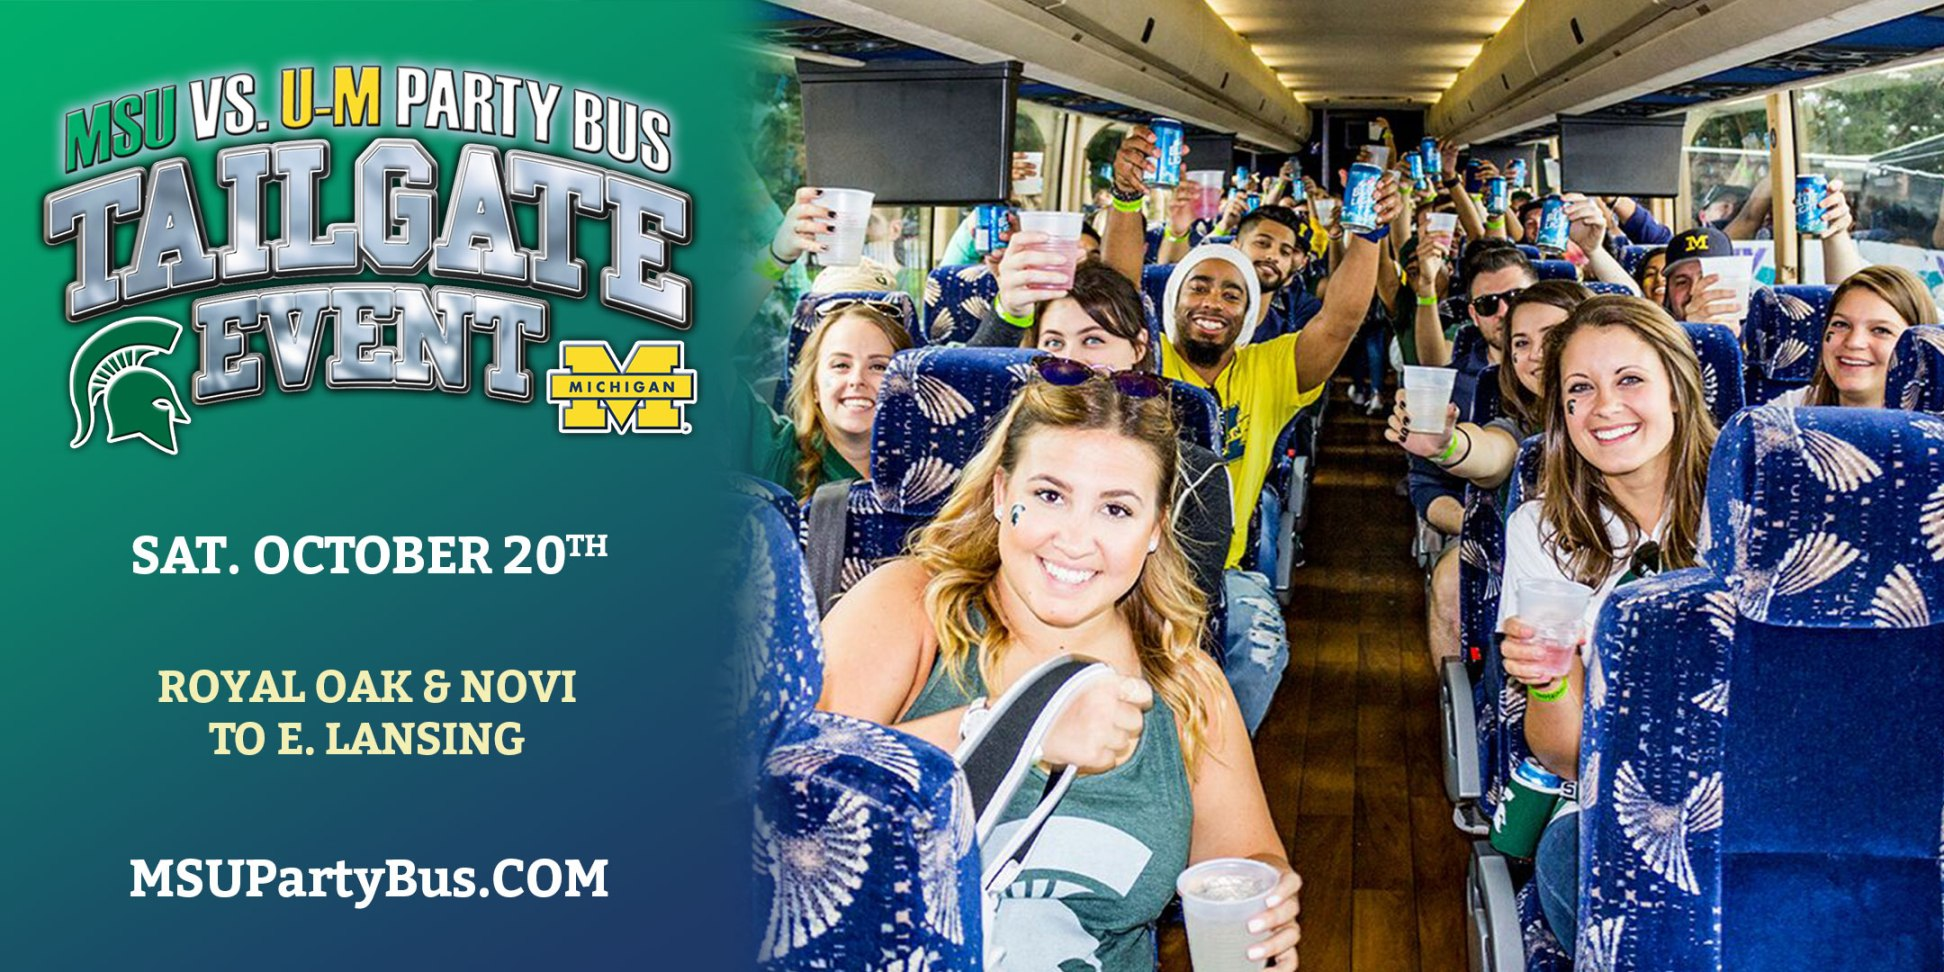 MSU-UM Party Bus 2020